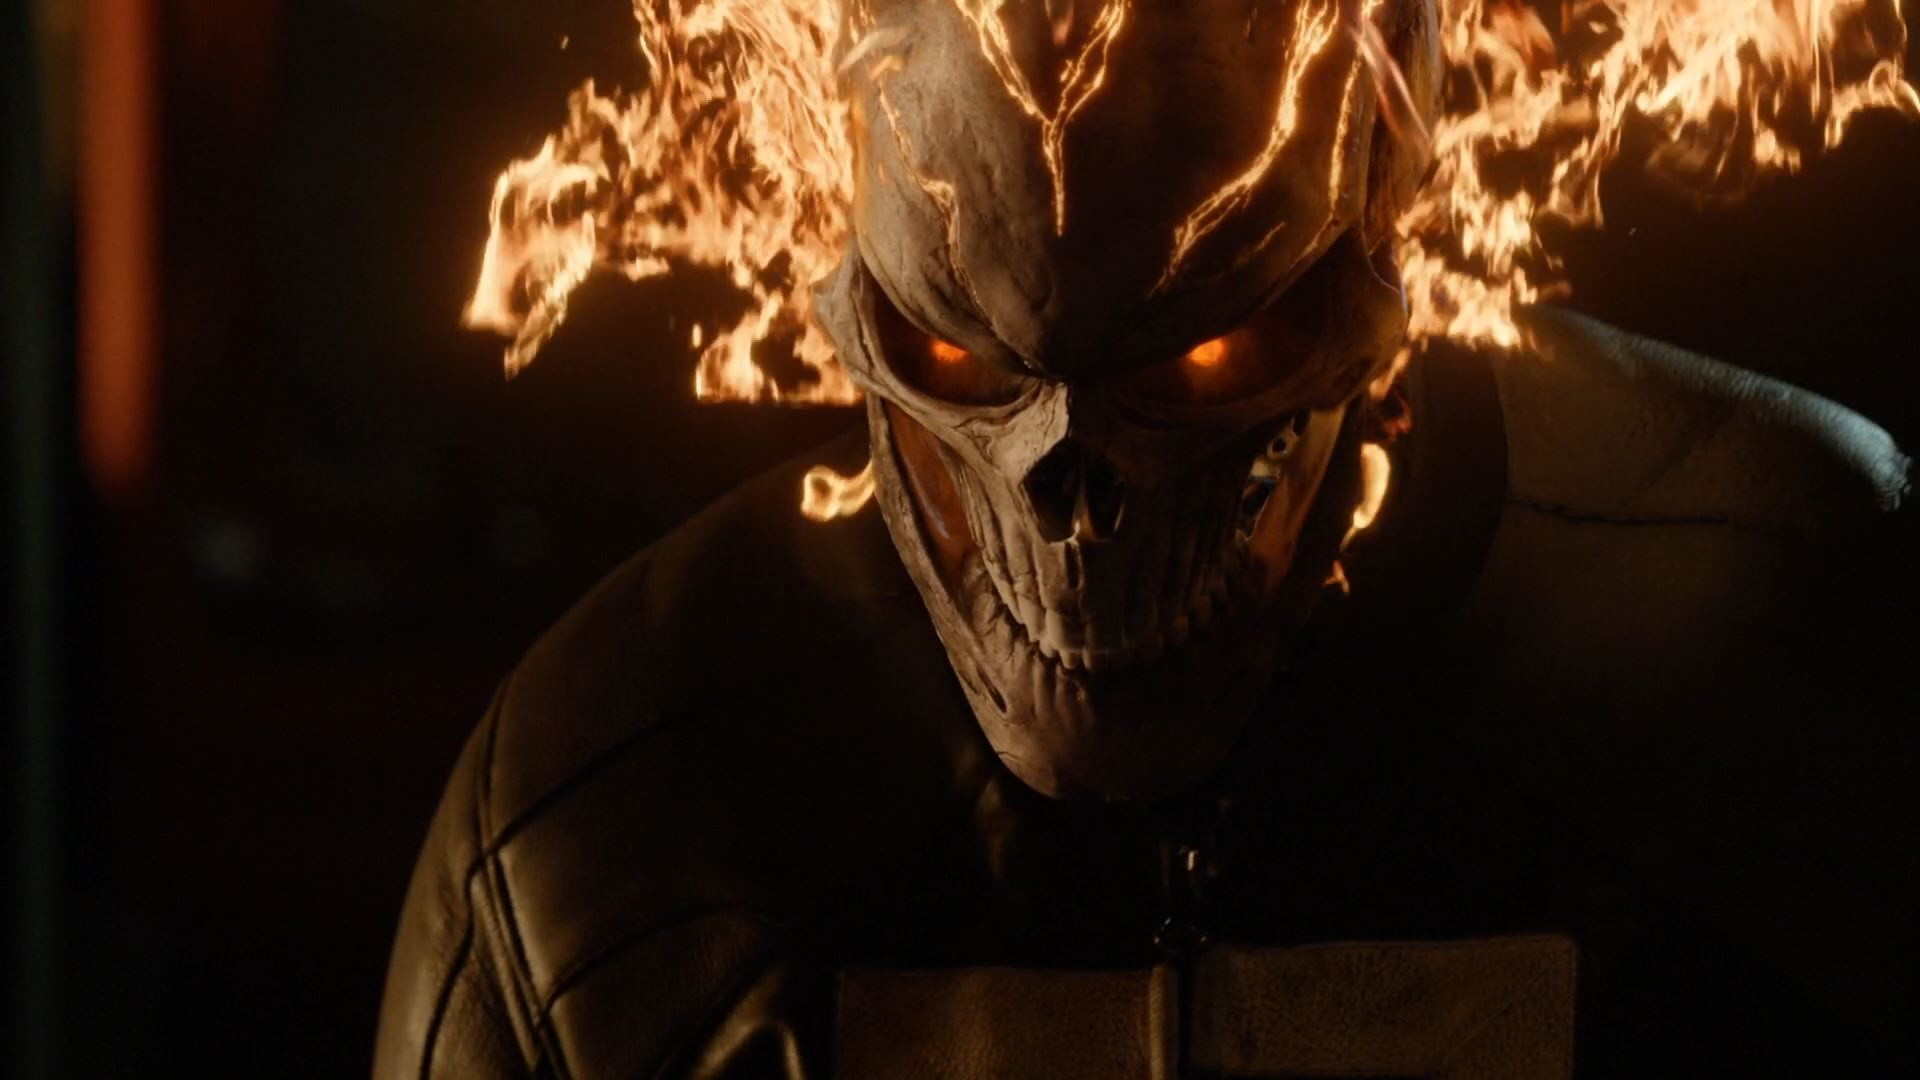 ghost rider agents of shield Full HD [1920×1080] …